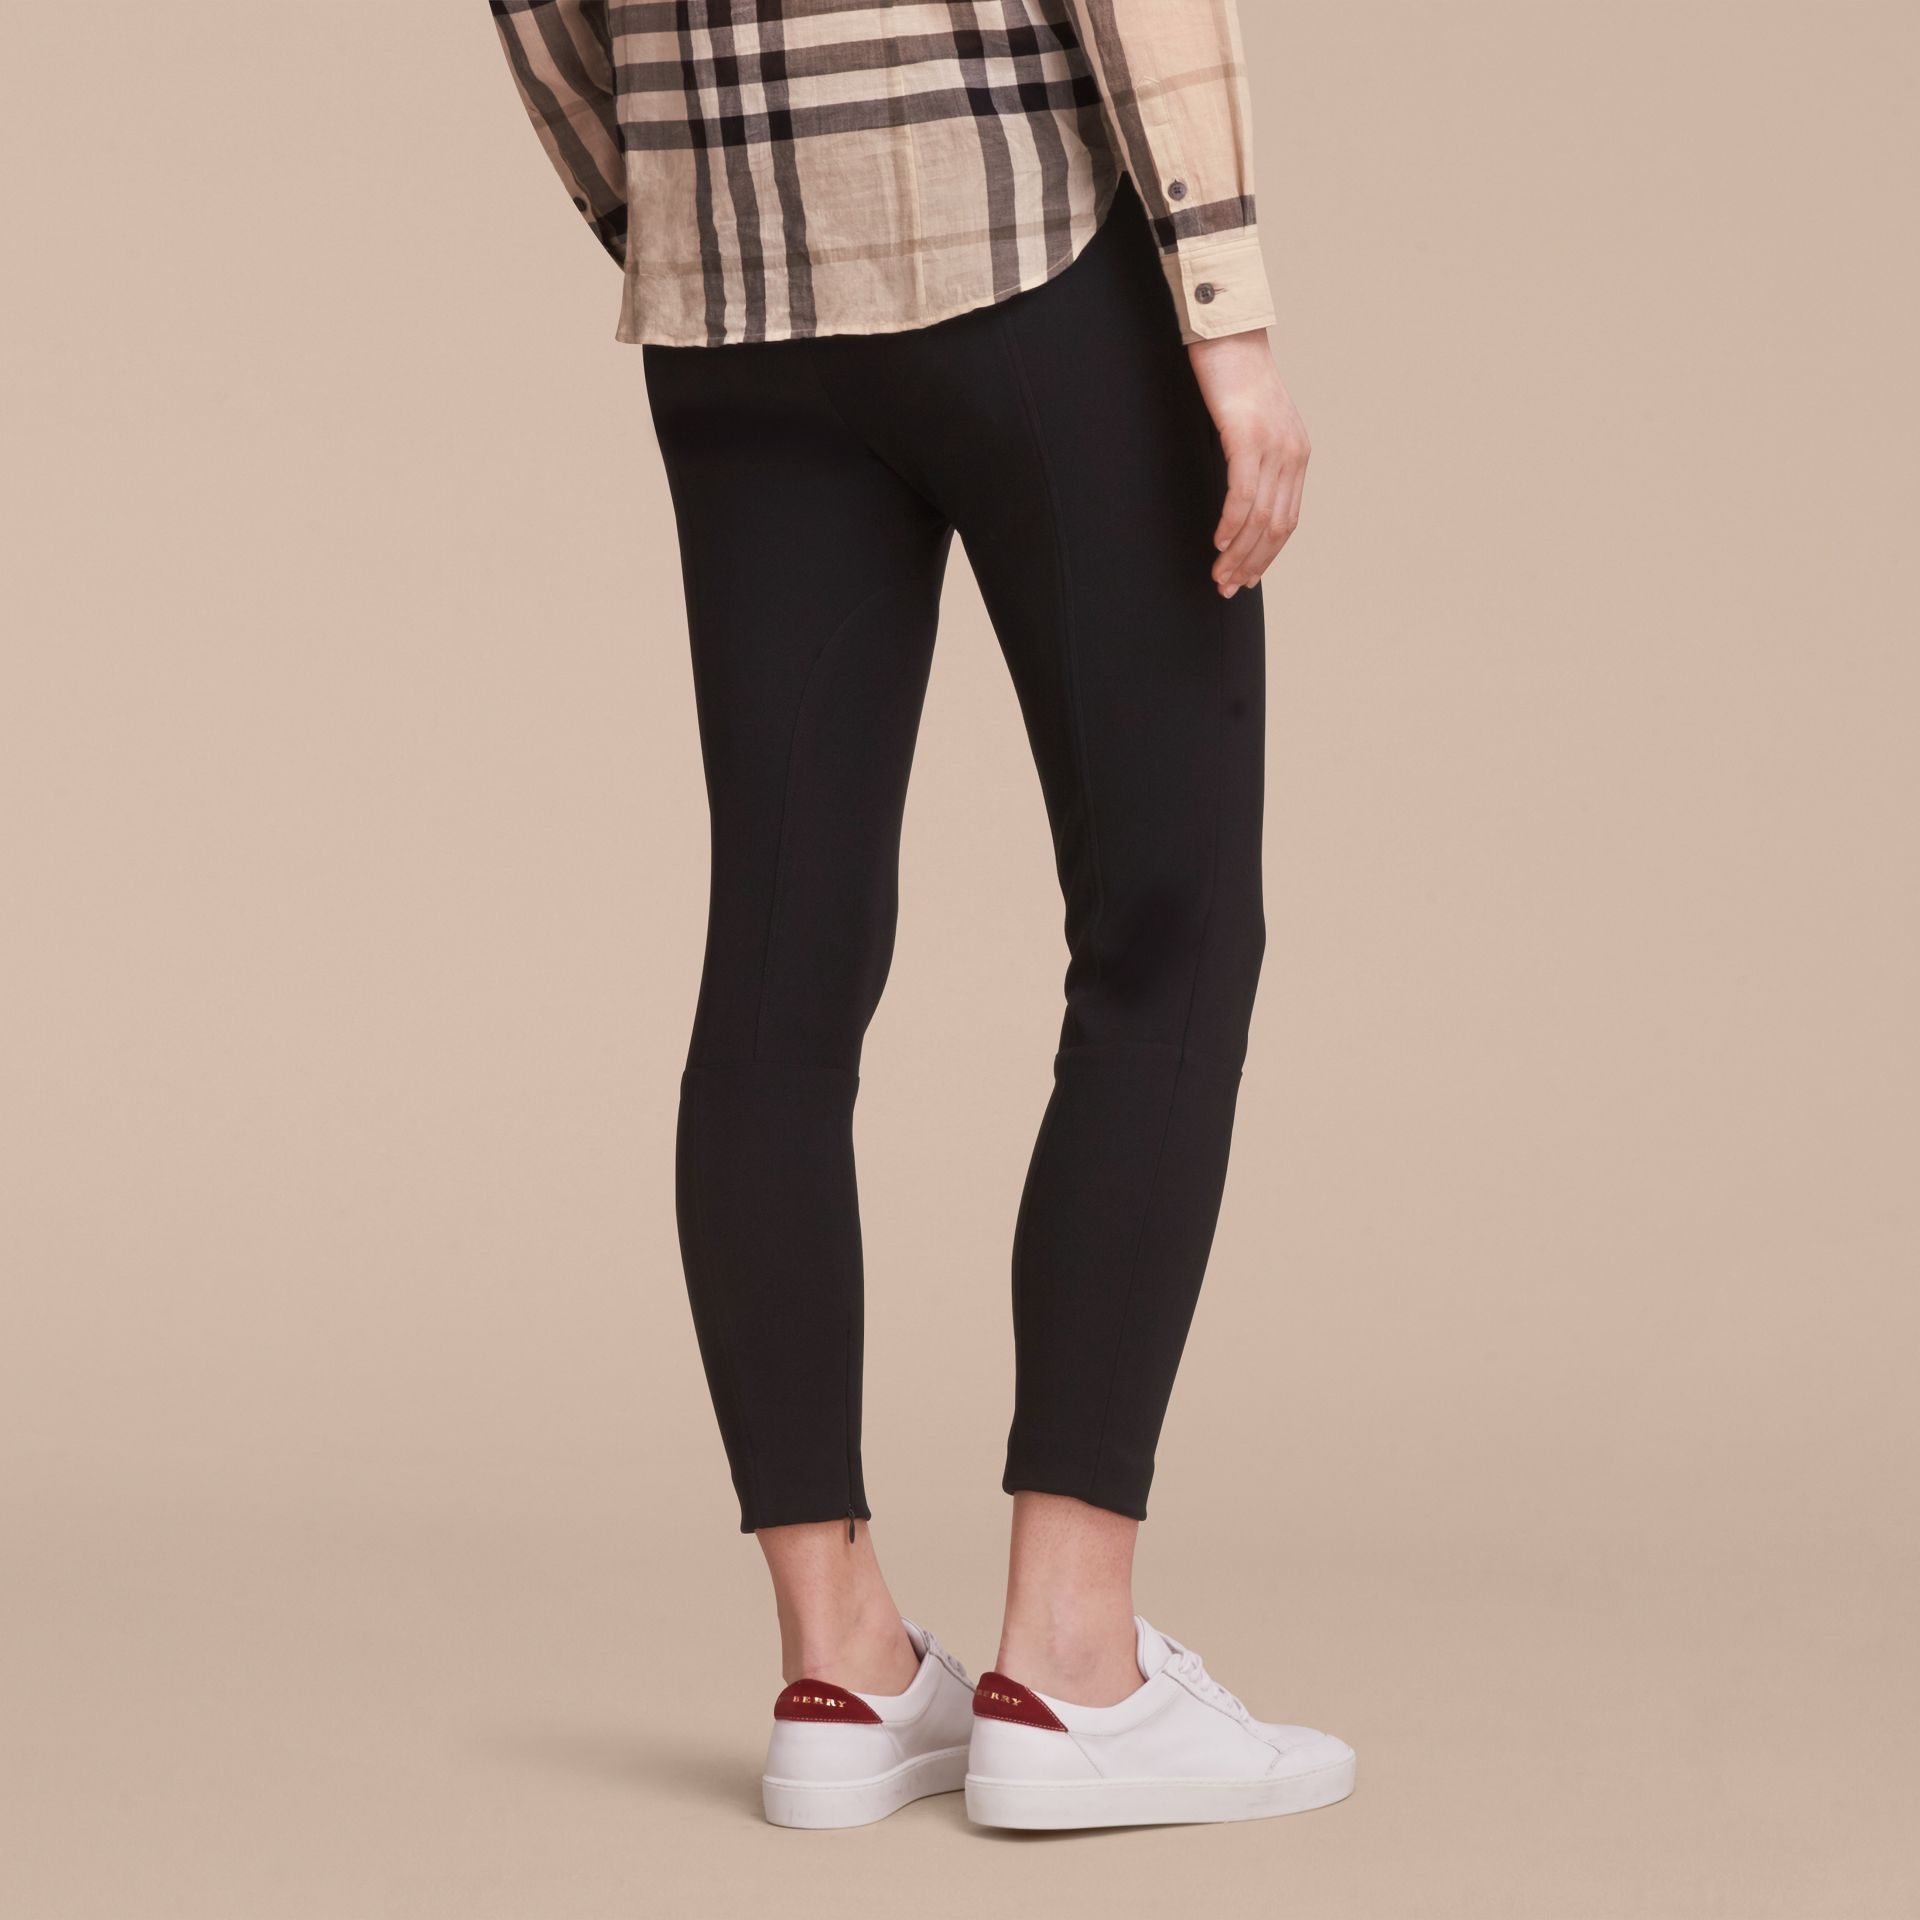 Cropped Slim Fit Trousers in Black - Women | Burberry - gallery image 3